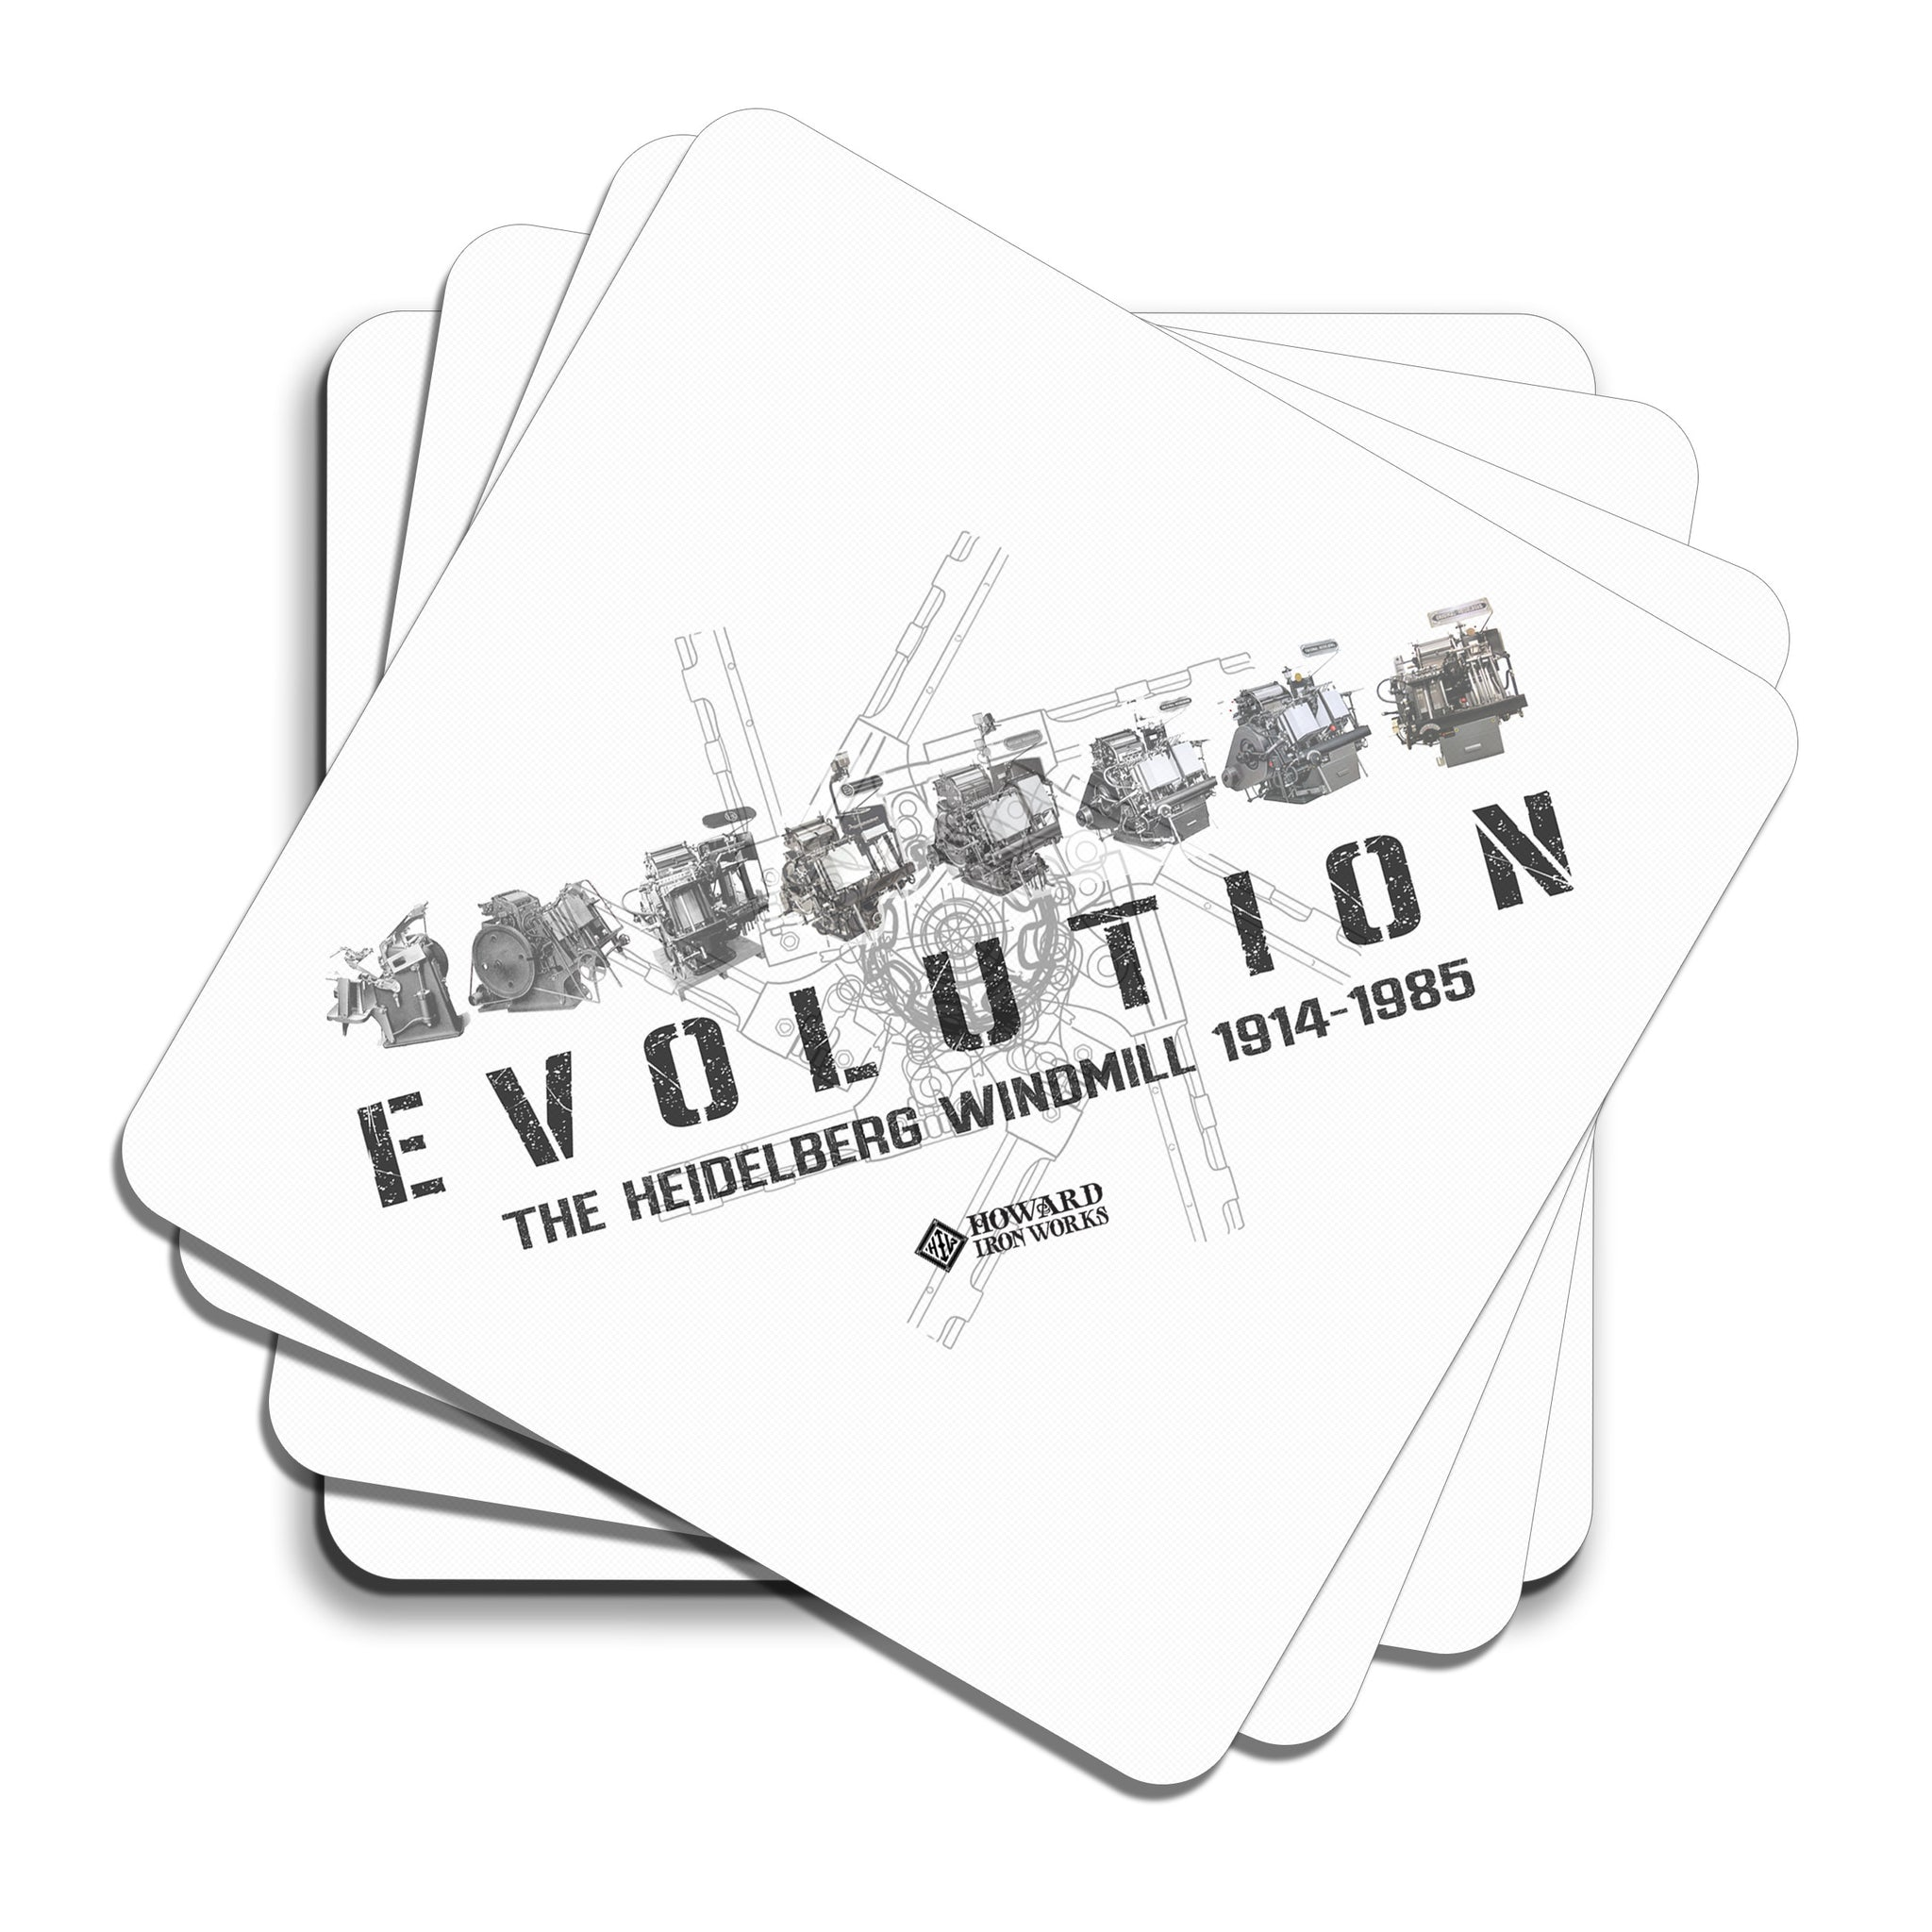 Howard Iron Works Printing Museum, Set of 4 Coasters, Cork Backing, Evolution of Heidelberg T Platen, White